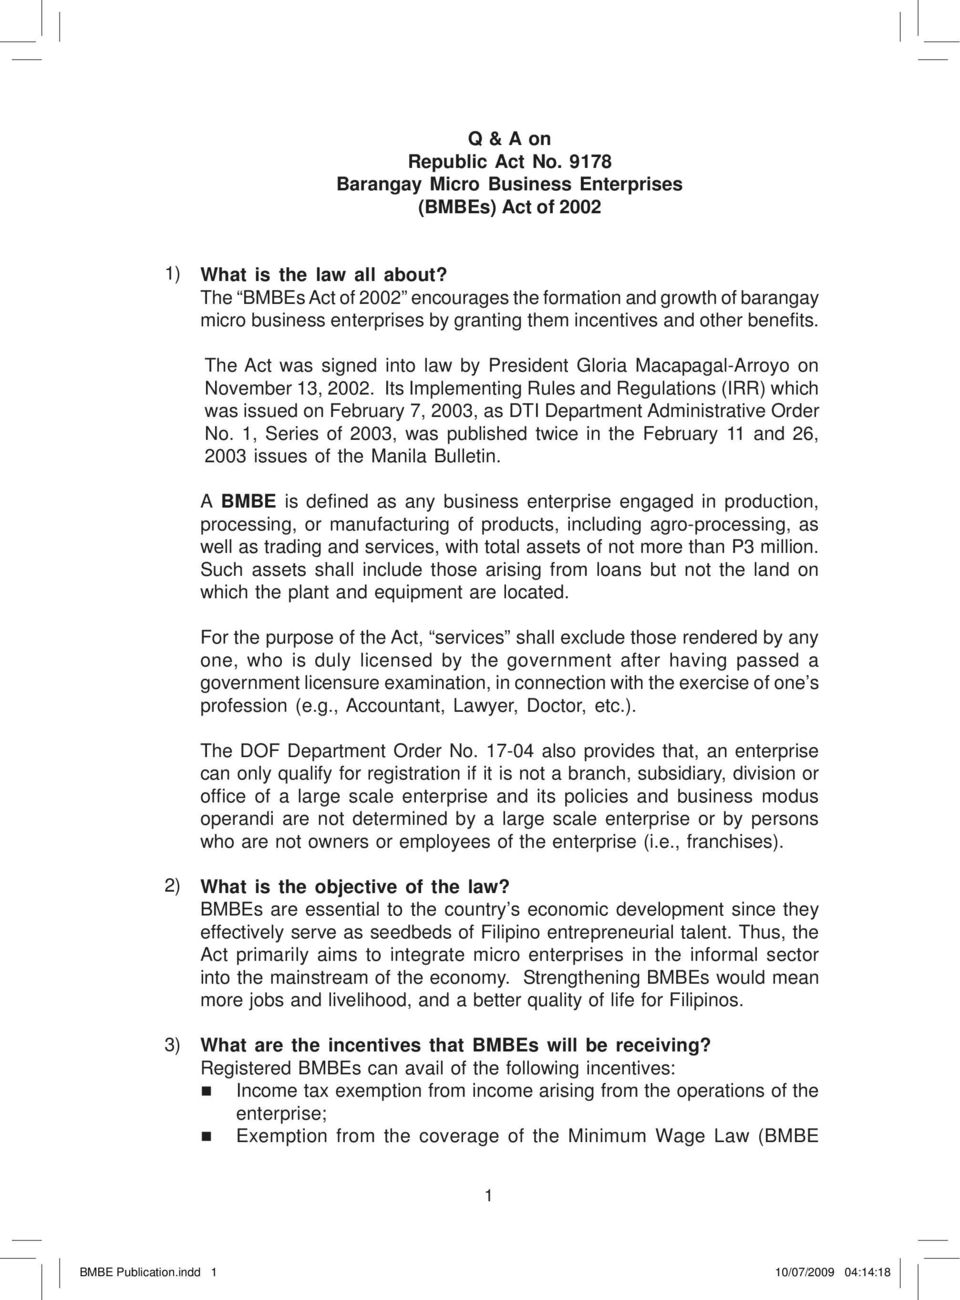 BMBE Law – Barangay Micro Business Enterprise Registration and Benefits